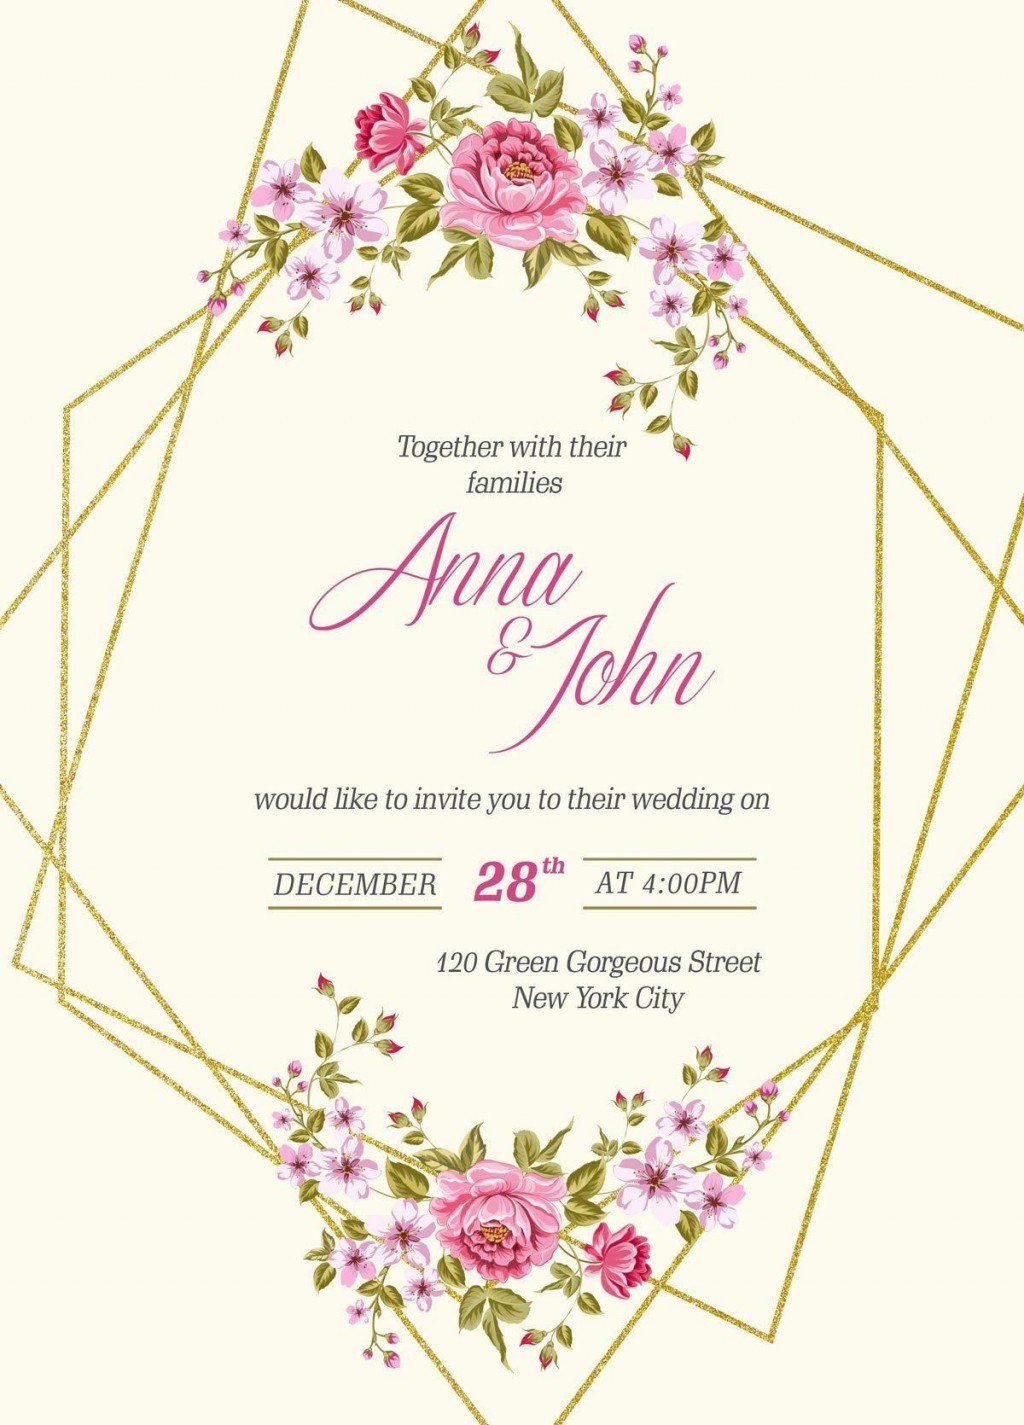 003 Fascinating Free Wedding Invitation Template For Word 2019 Highest Clarity Large